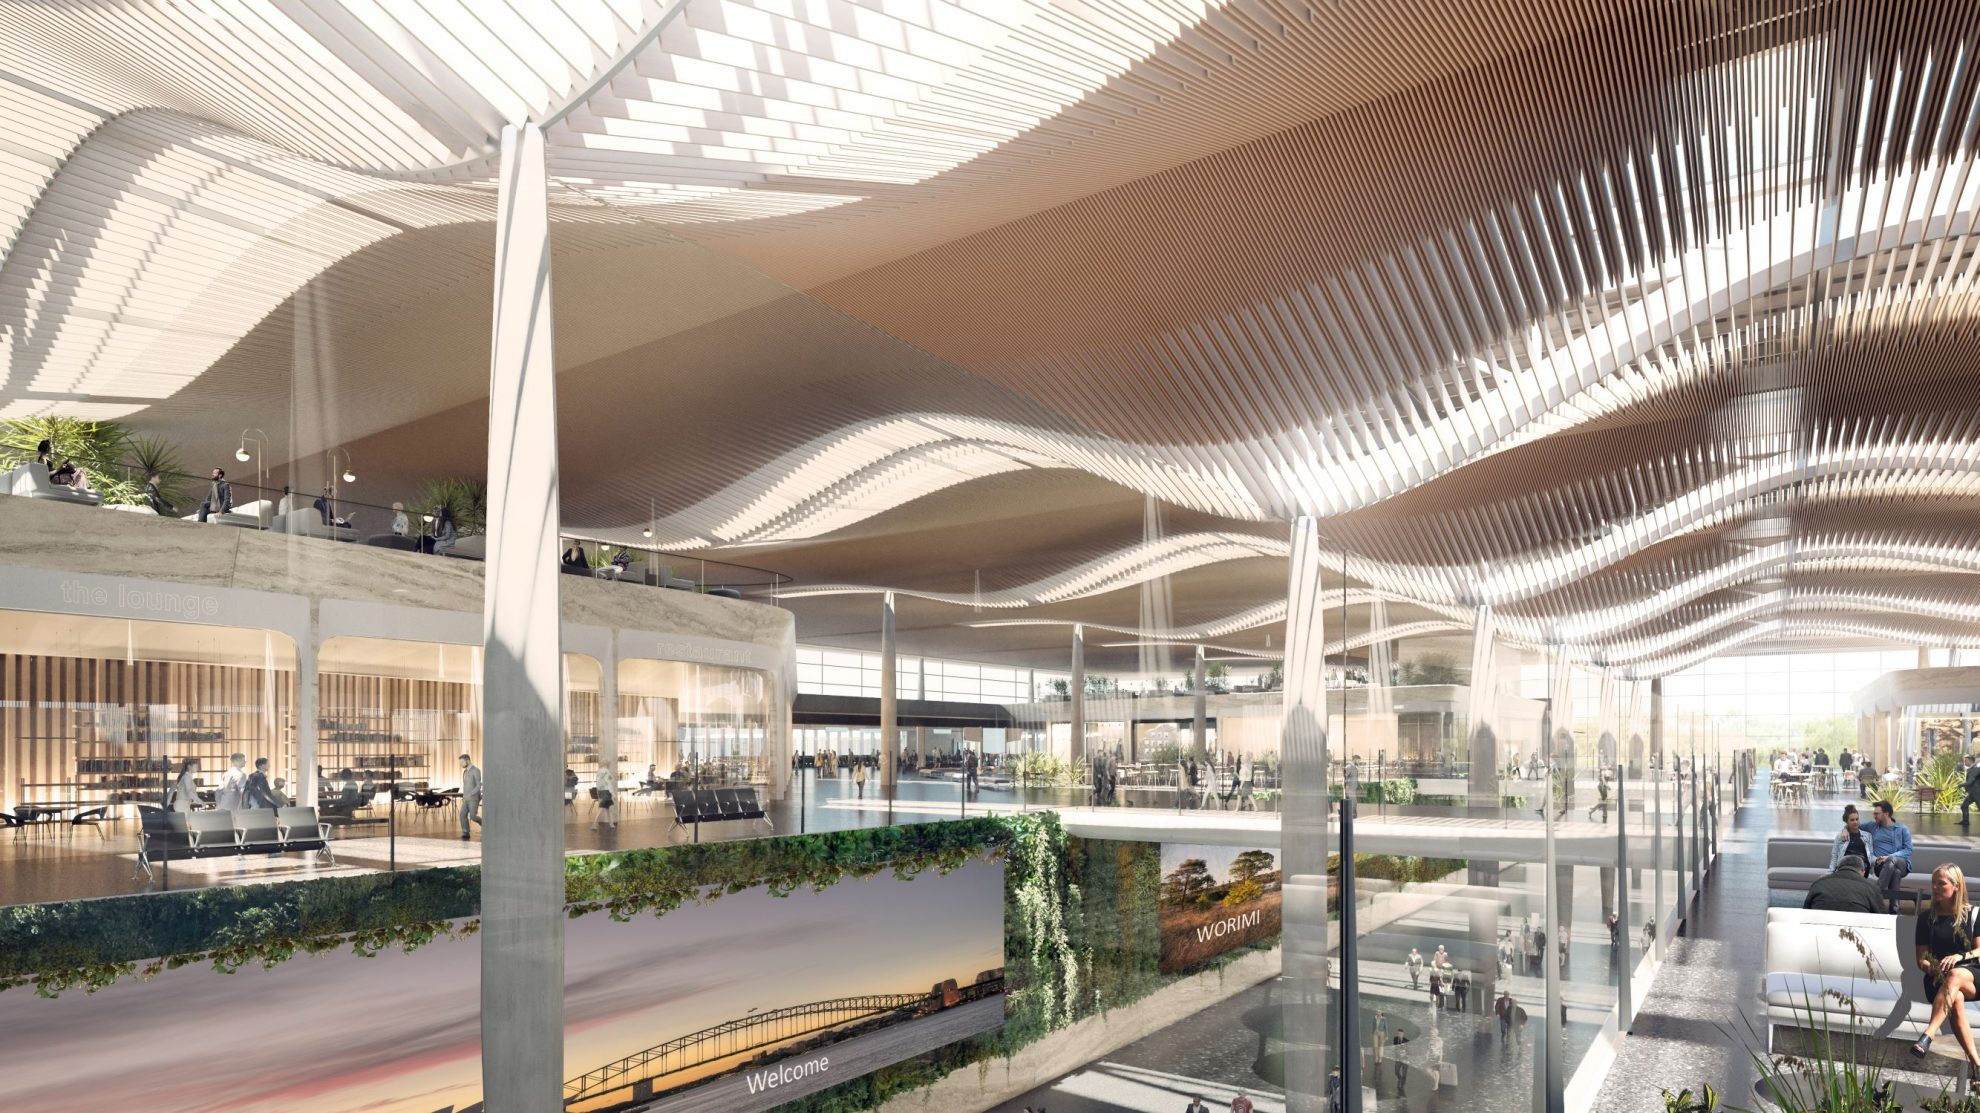 A new front-door for Sydney: Western Sydney Airport win announced